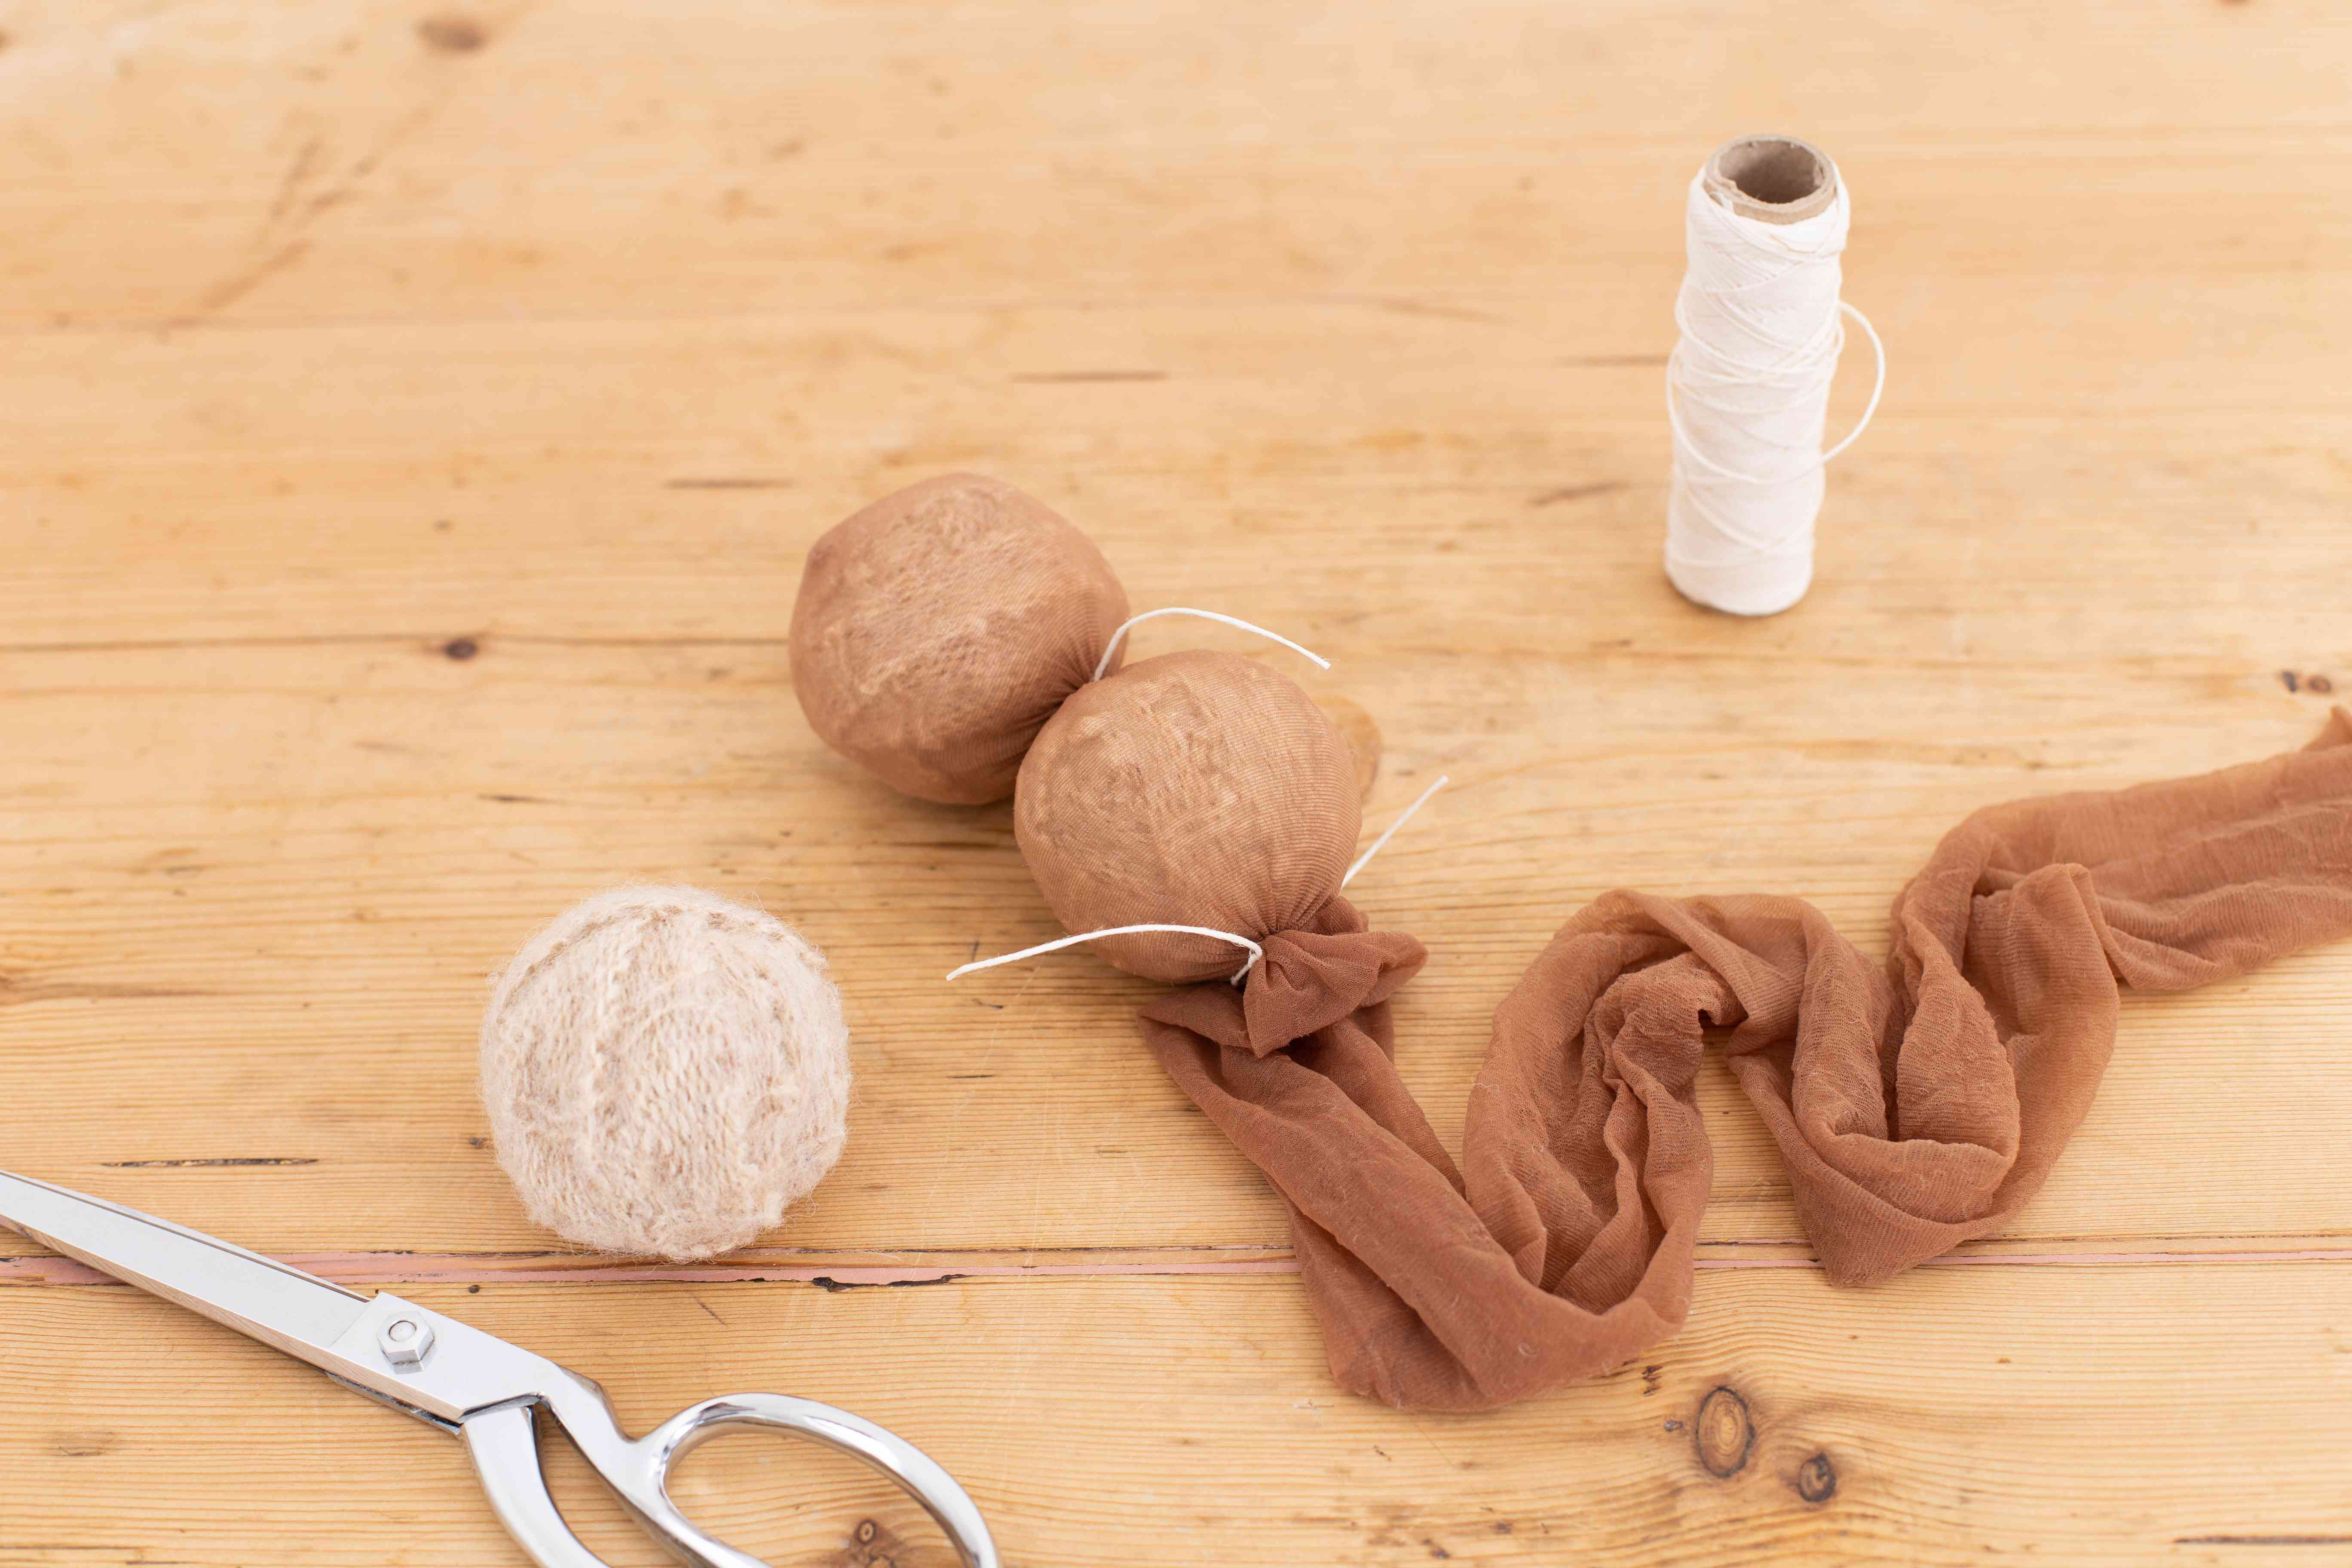 Leg of pantyhose wrapping dryer balls and tied with cotton string